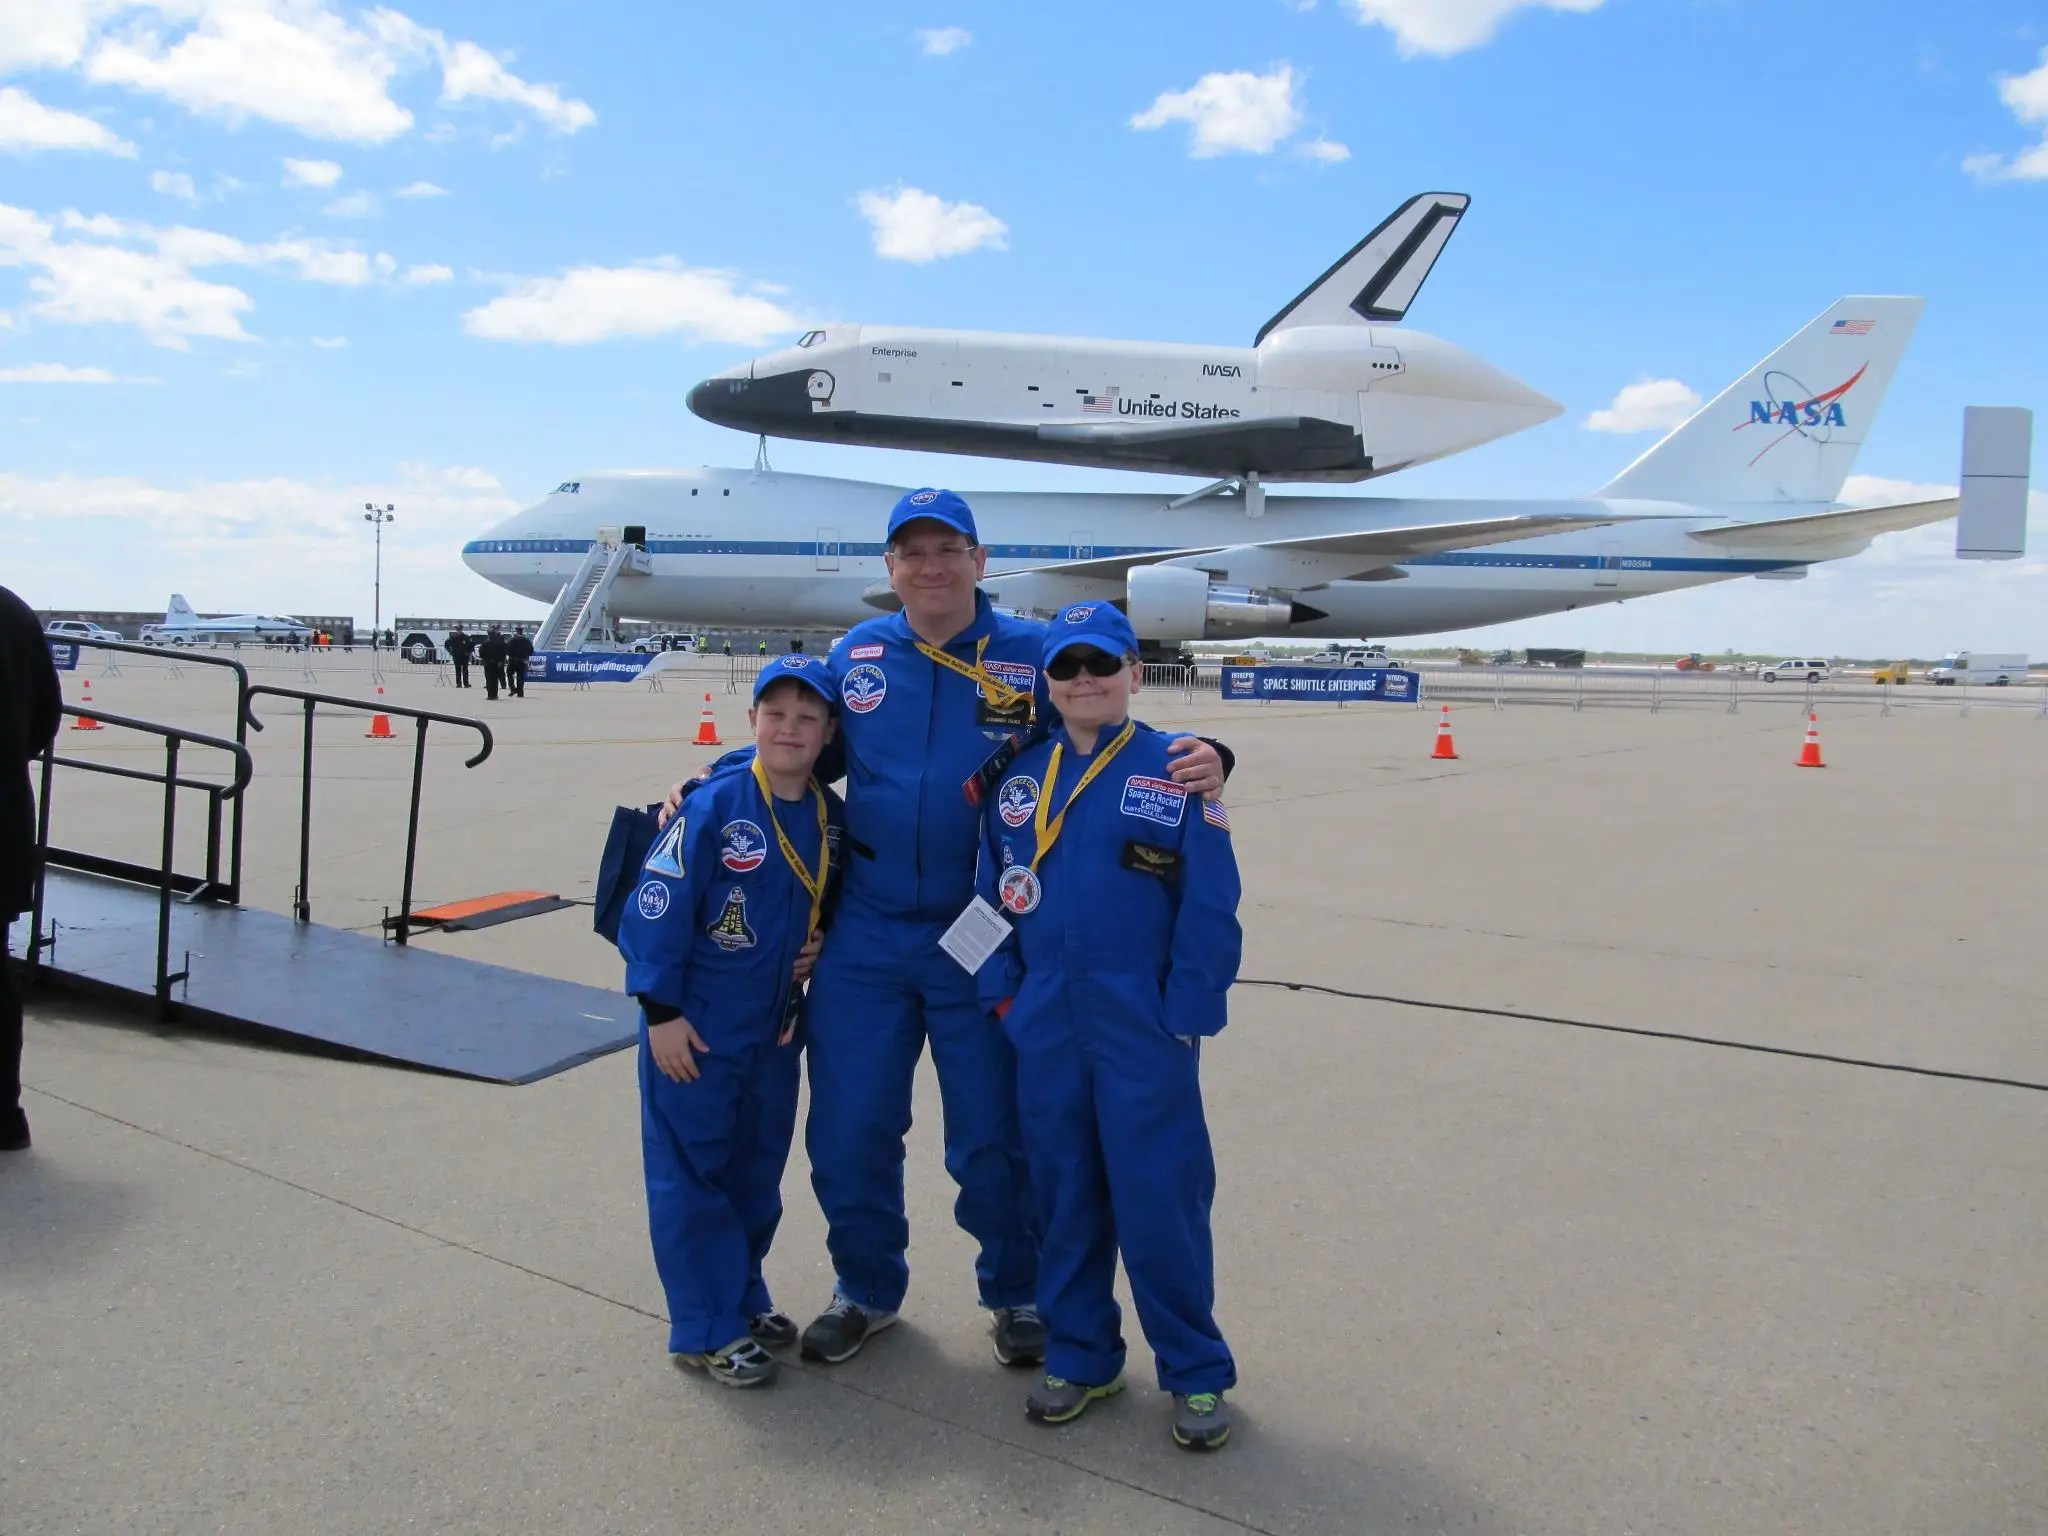 At Space Camp, kids are trained in robotics, space missions, and more.